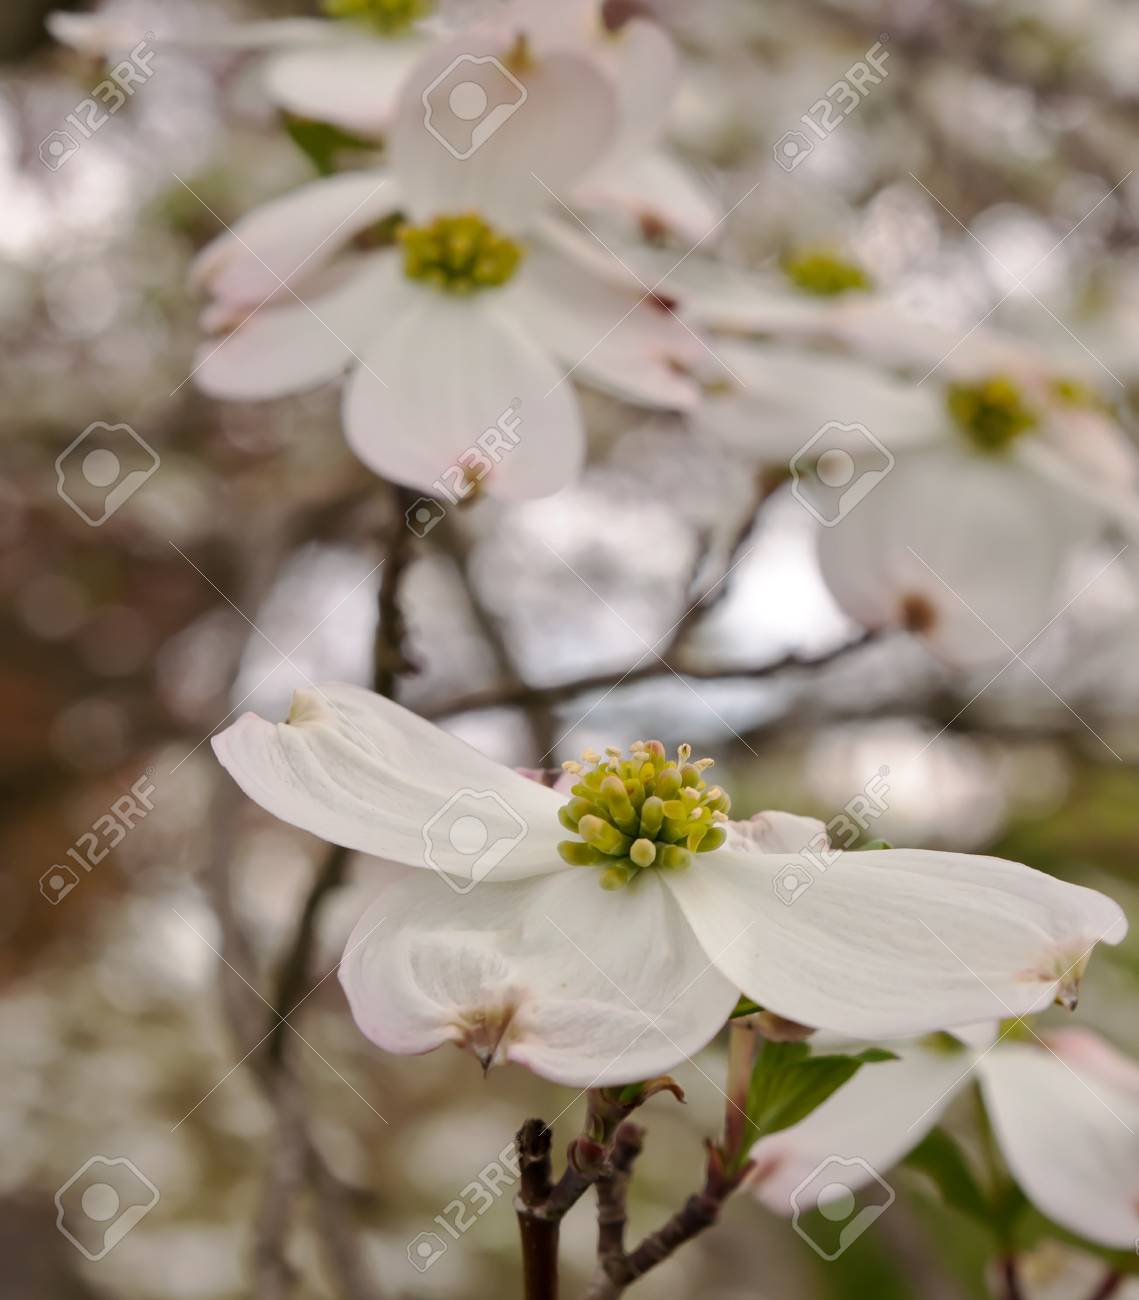 White Dogwood Flowers With A Blurred Background In Spring Time Stock